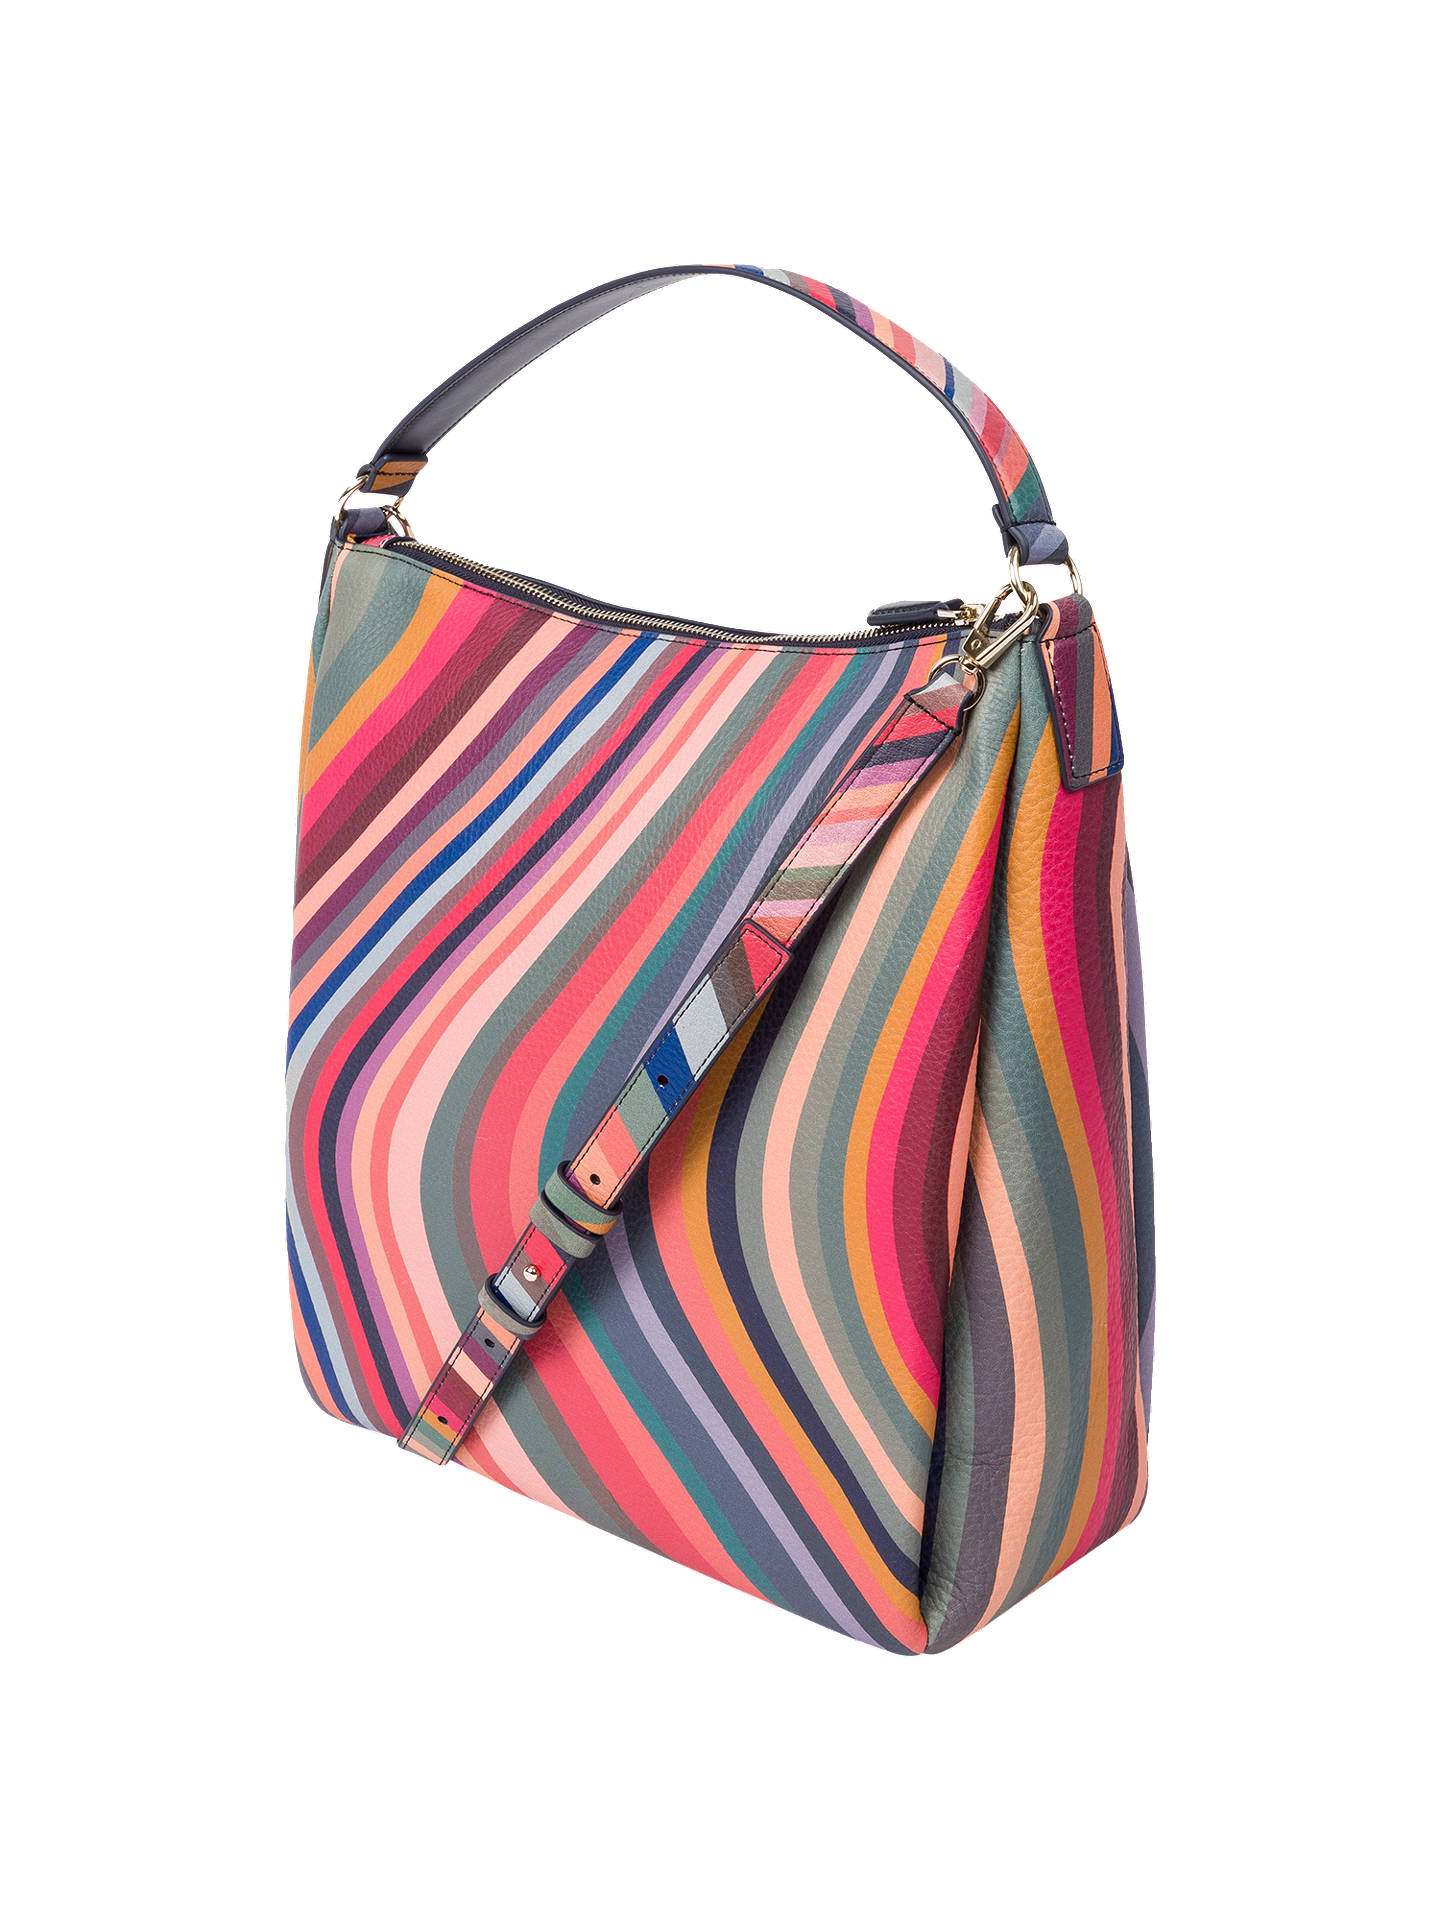 Paul Smith Leather Swirl Hobo Bag, Multi at John Lewis ...